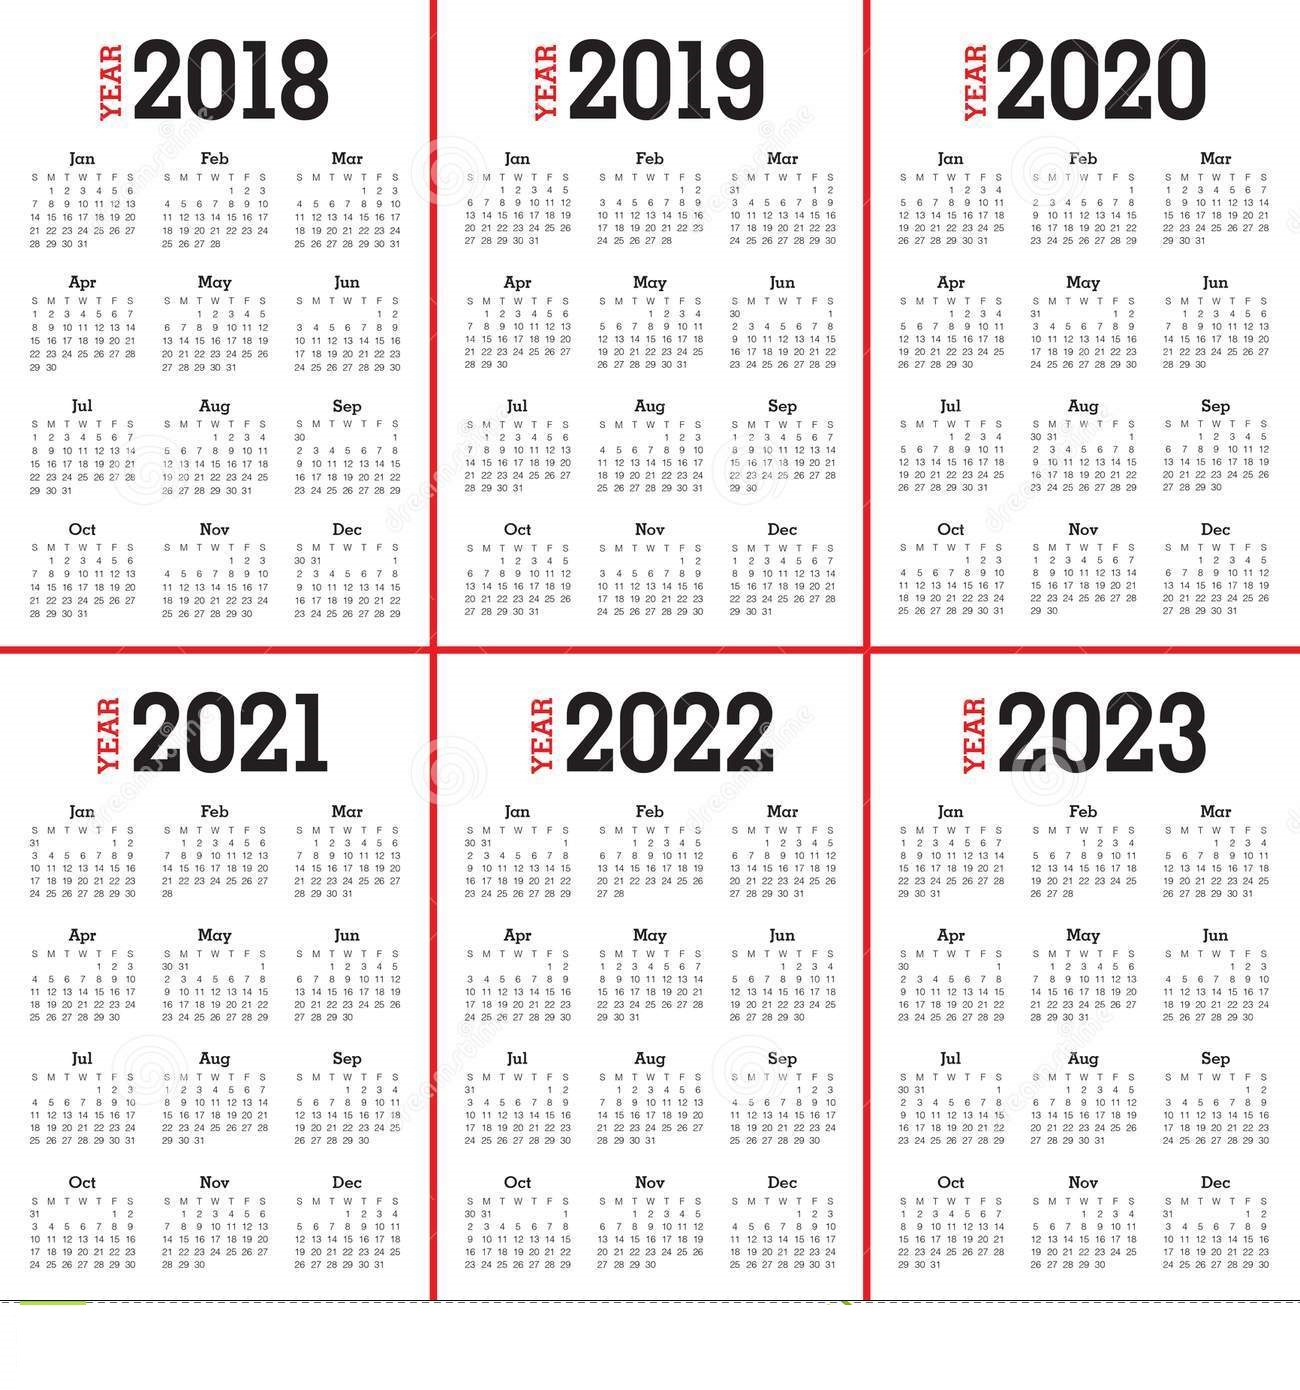 5 Year Calendar 2019 To 2023 With Free Printable Blank PDF Template October 2018